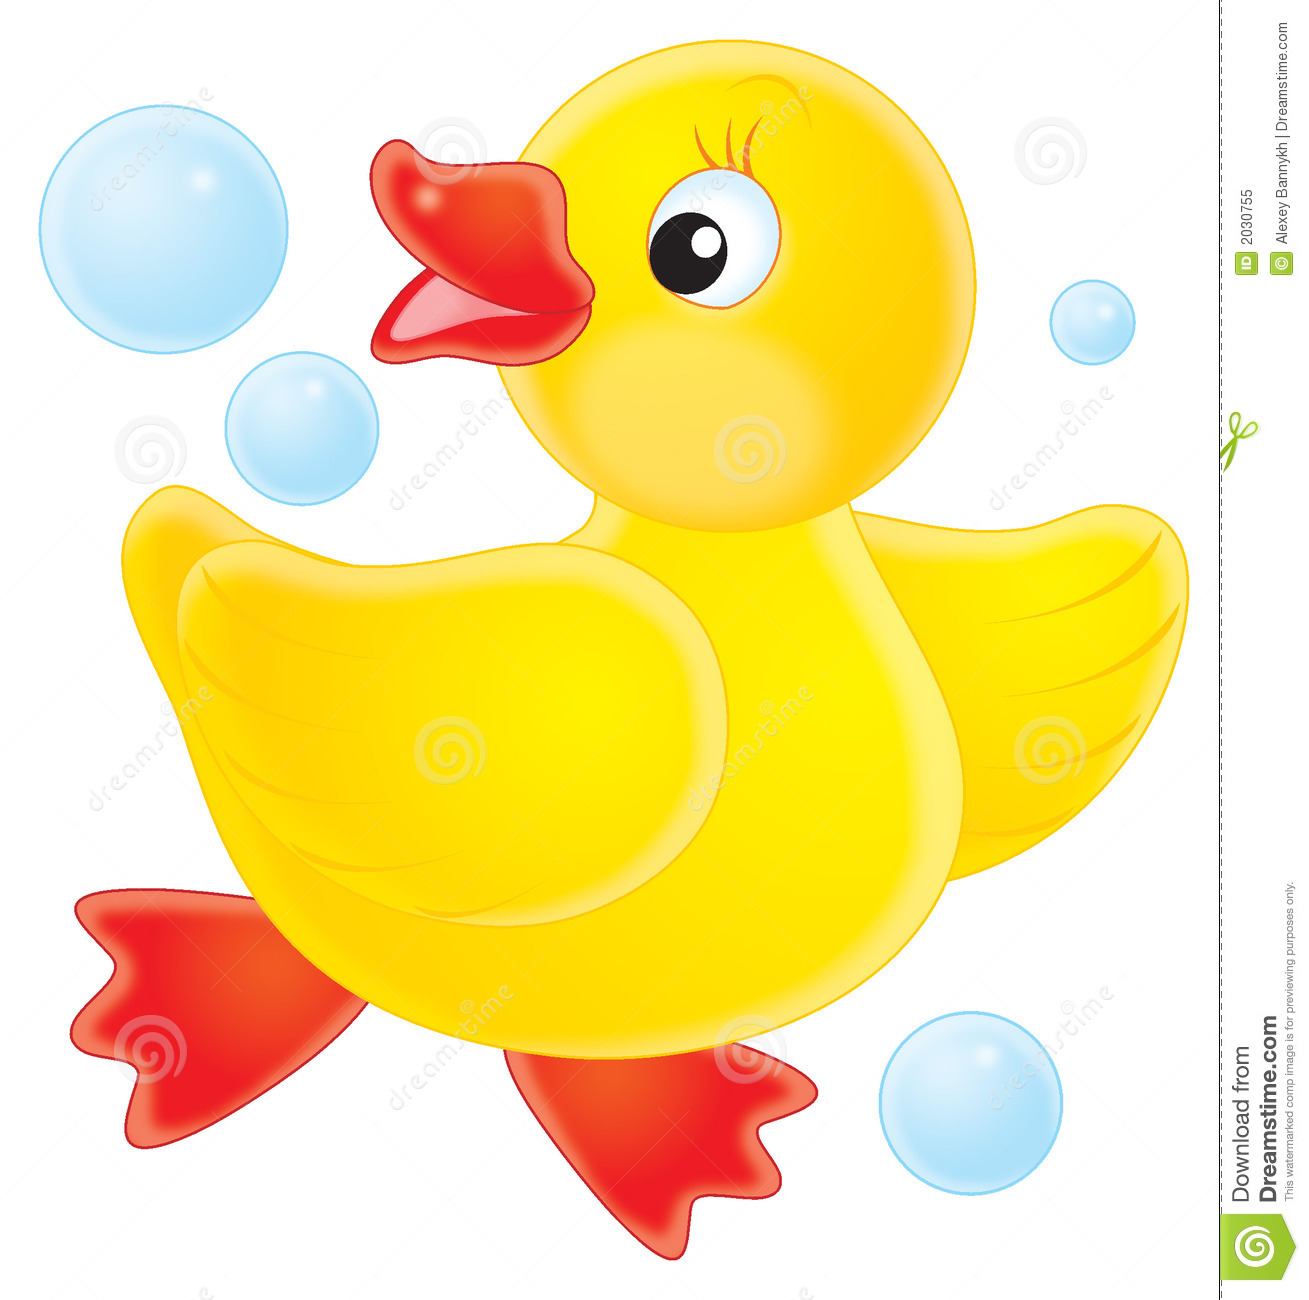 Duckling clipart #9